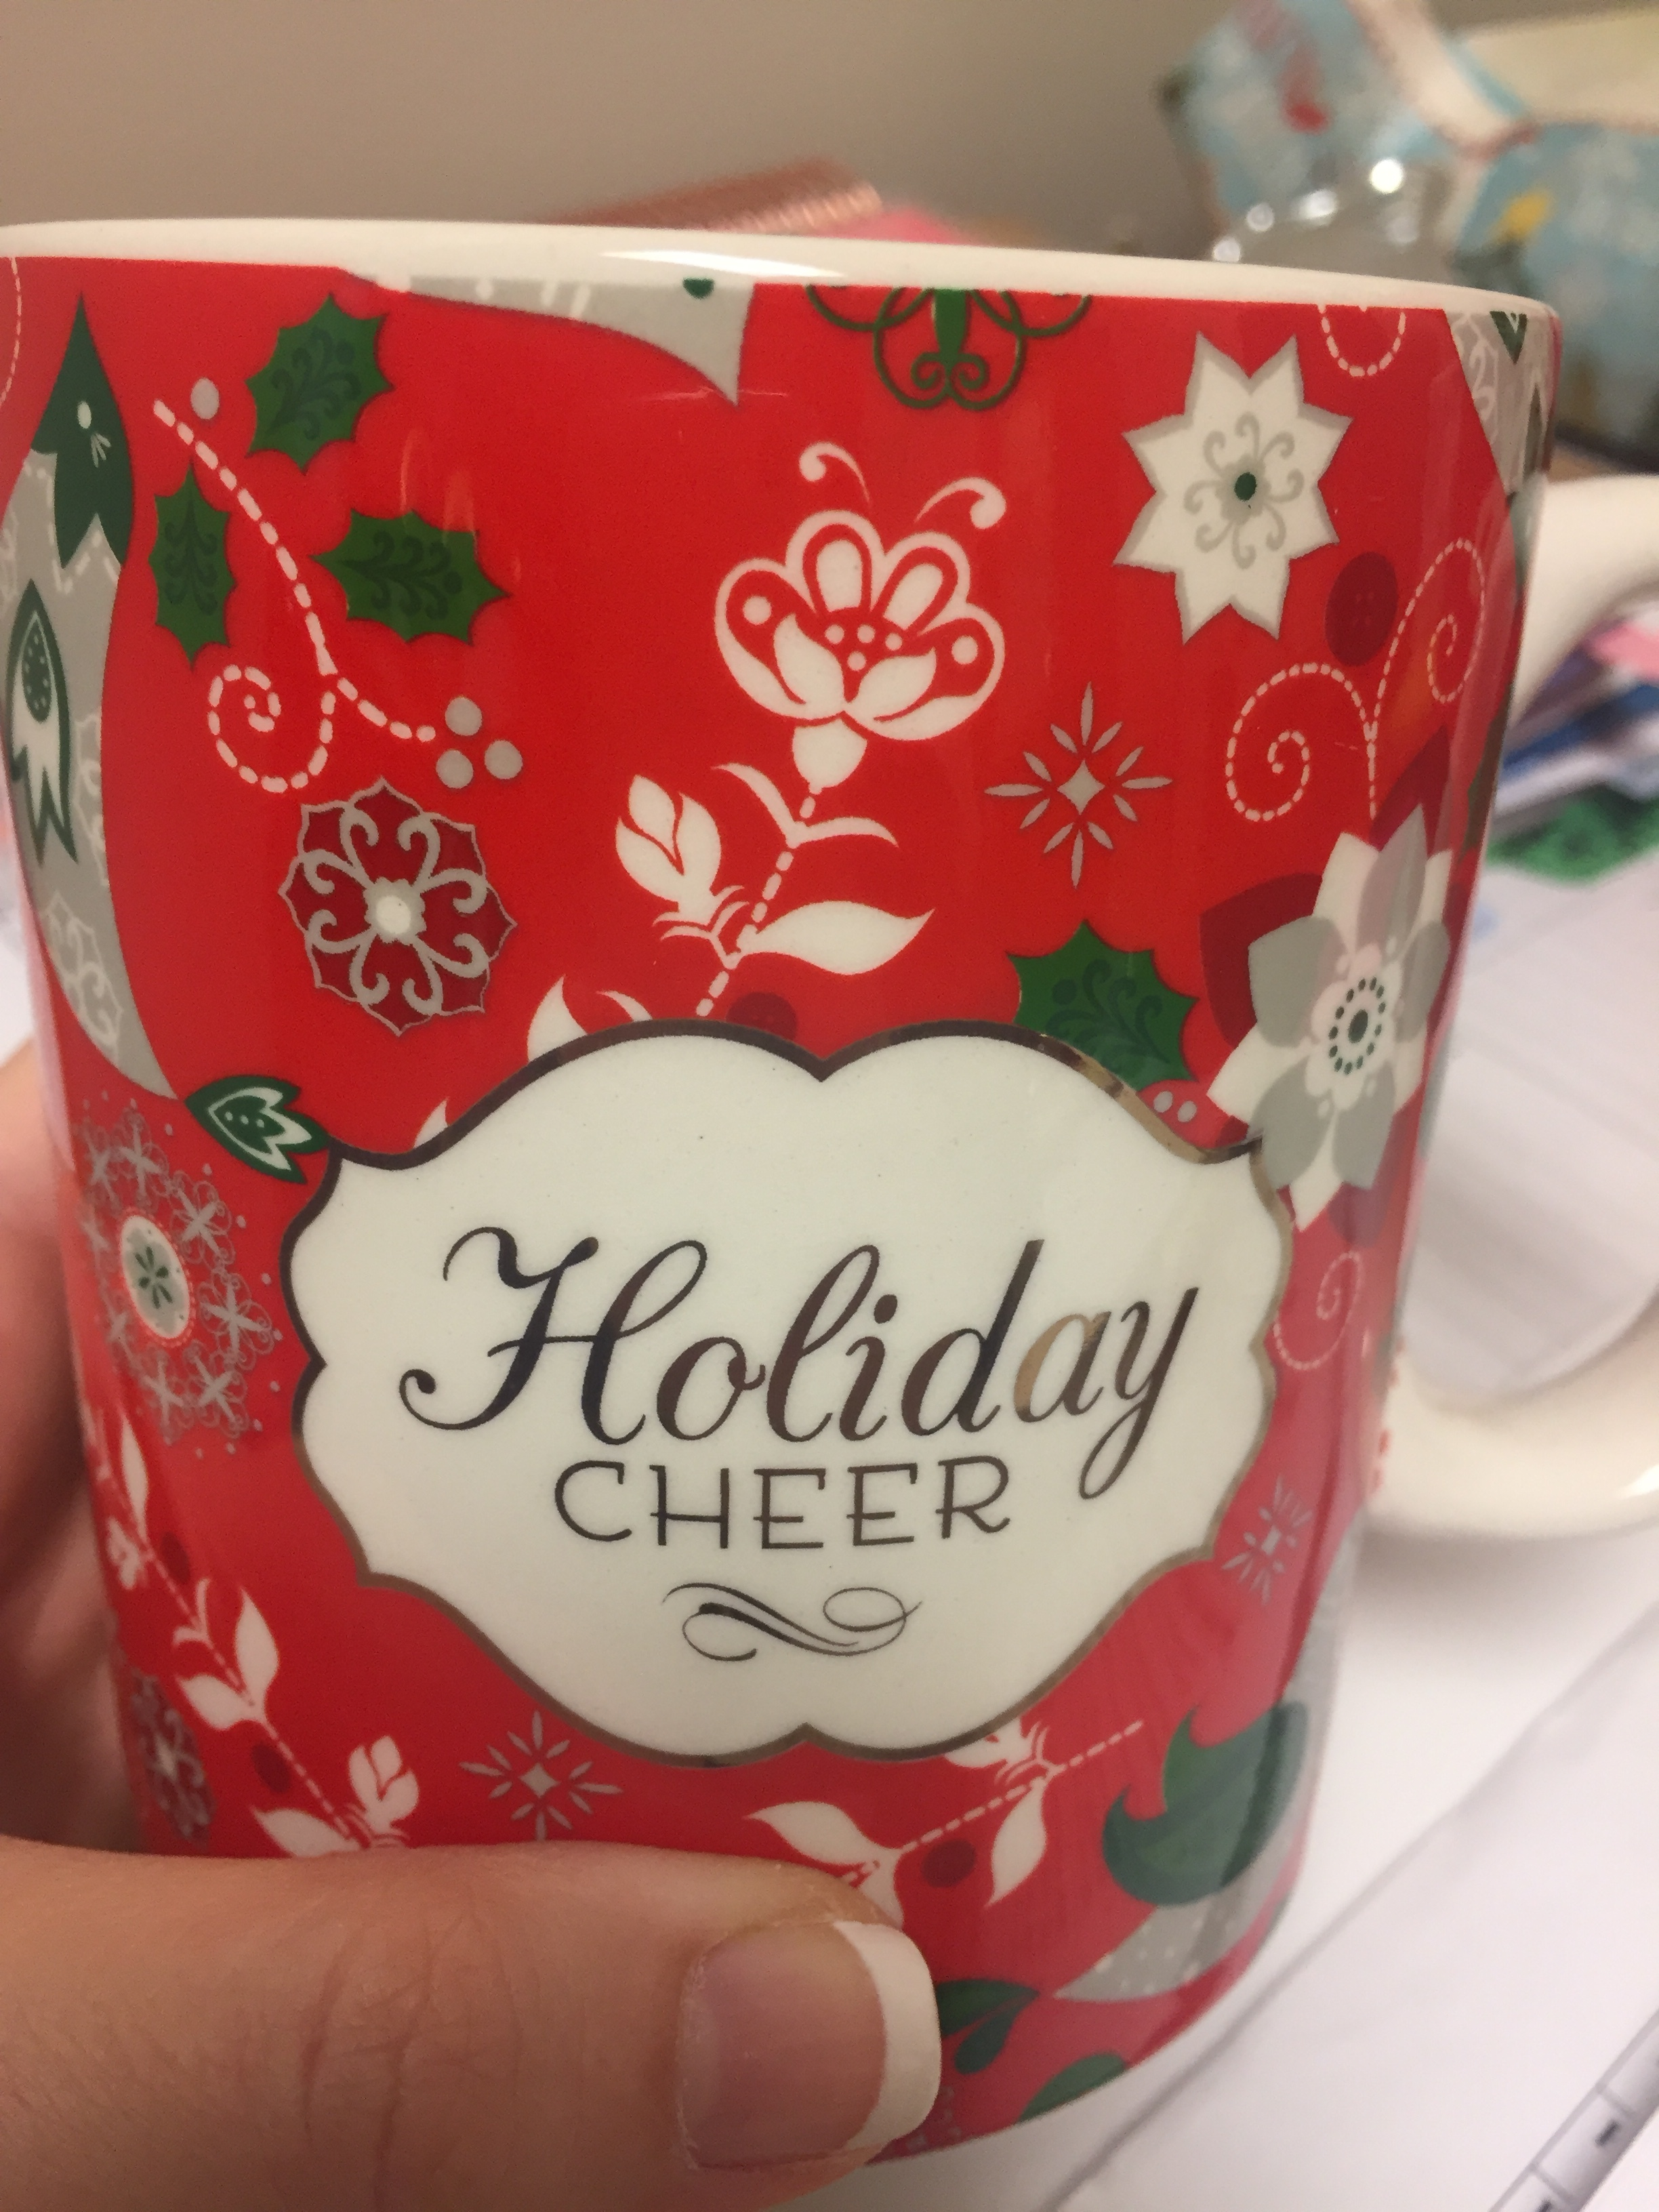 A cute holiday mug from one of my coworkers!